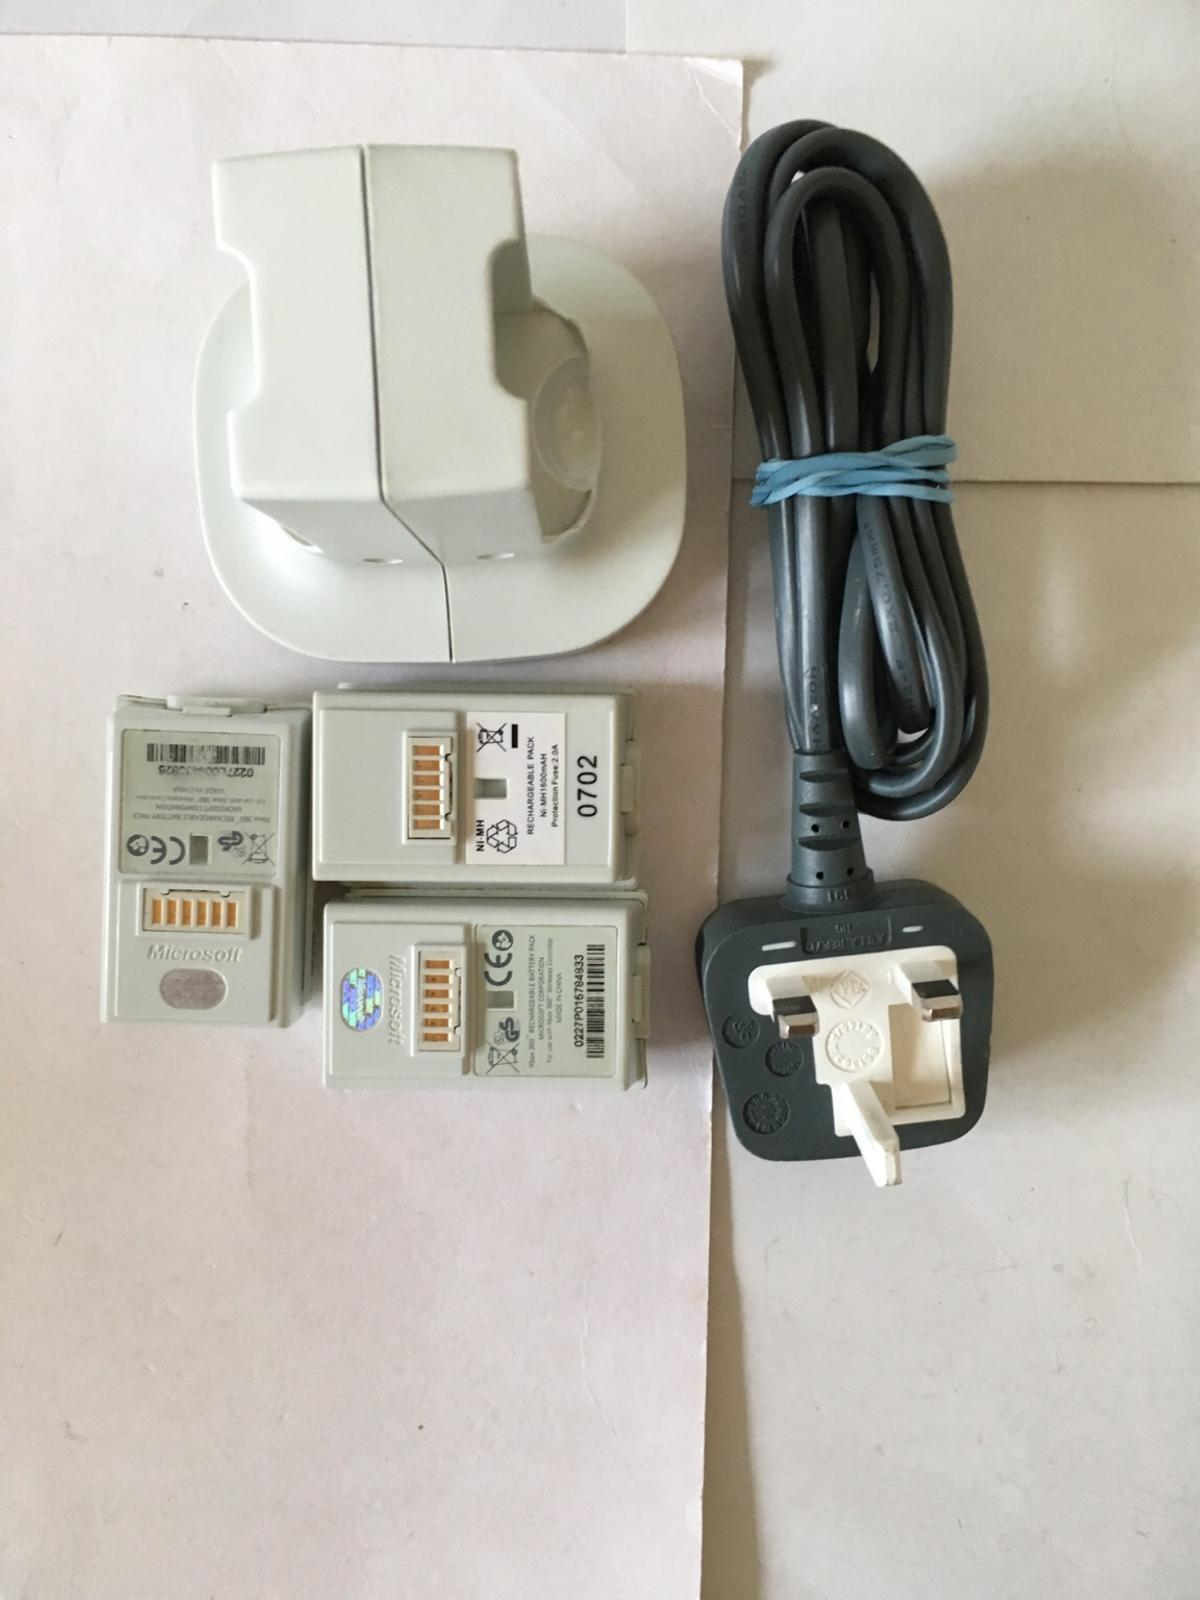 Xbox Adapter Fuse on